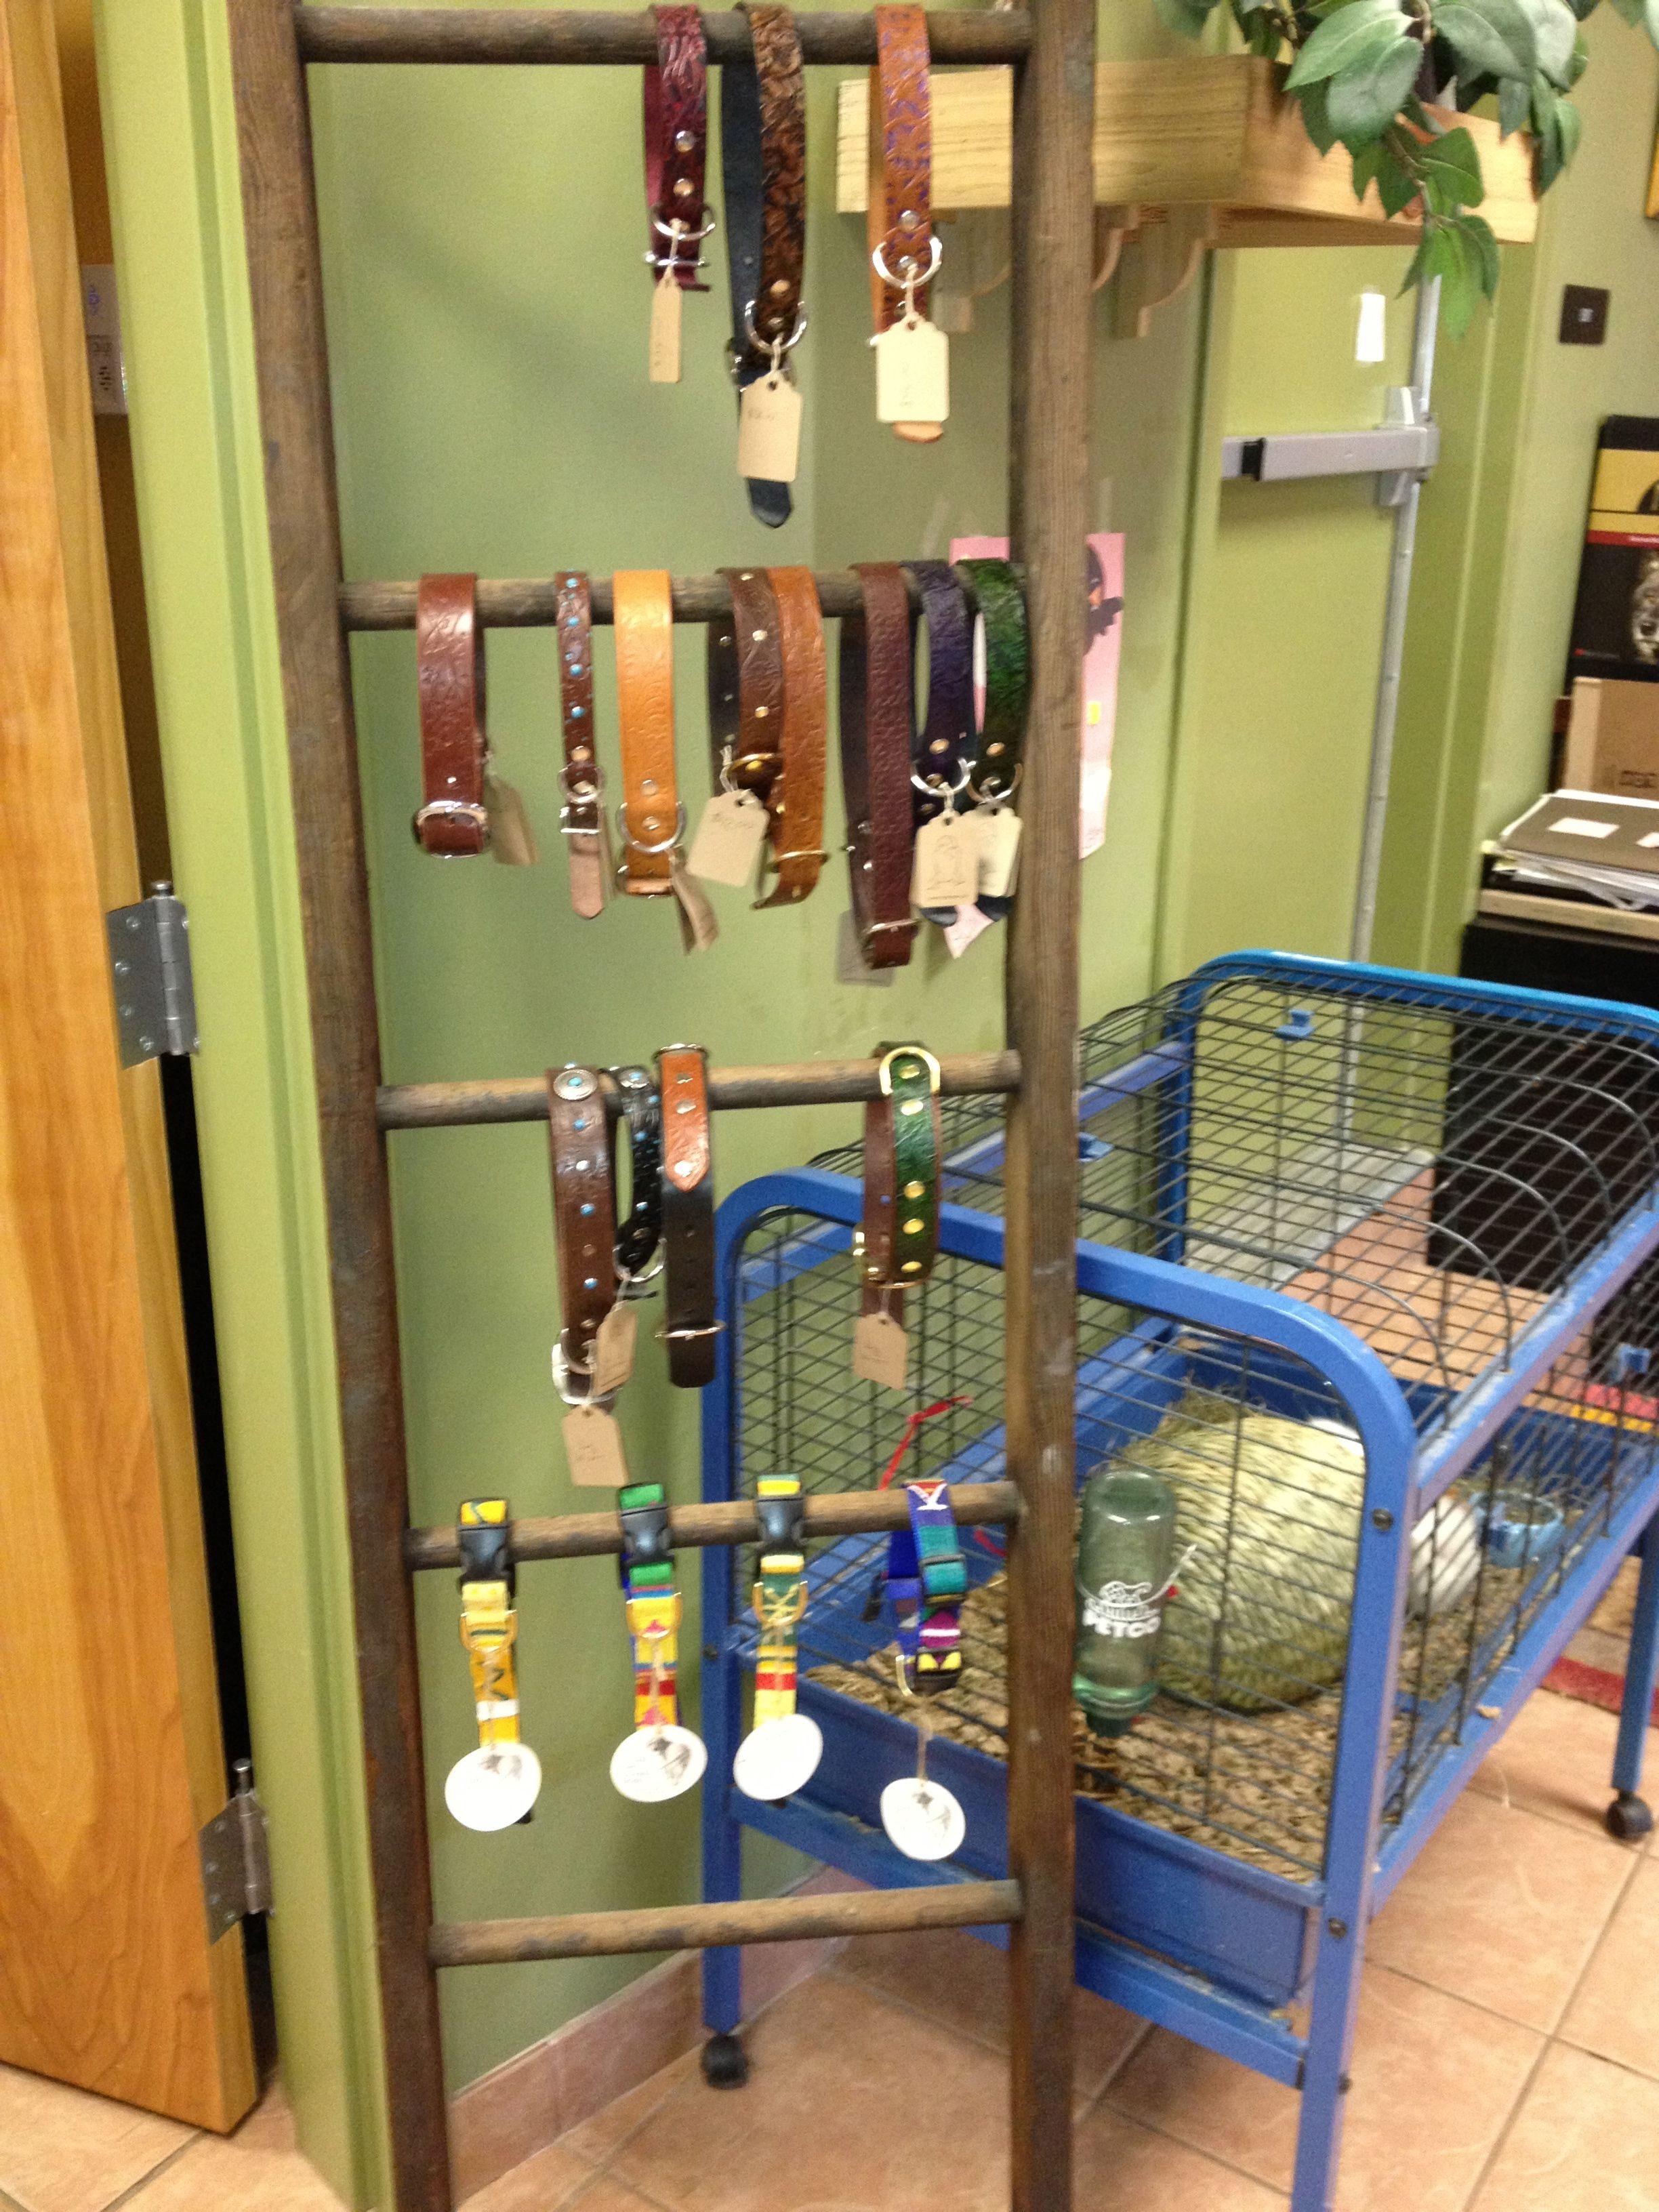 We Found This Ladder In The Back Alley One Day And Cleaned Up To Make A Great Display For Collars And Leashes Pet Store Display Dog Collar Display Pet Store